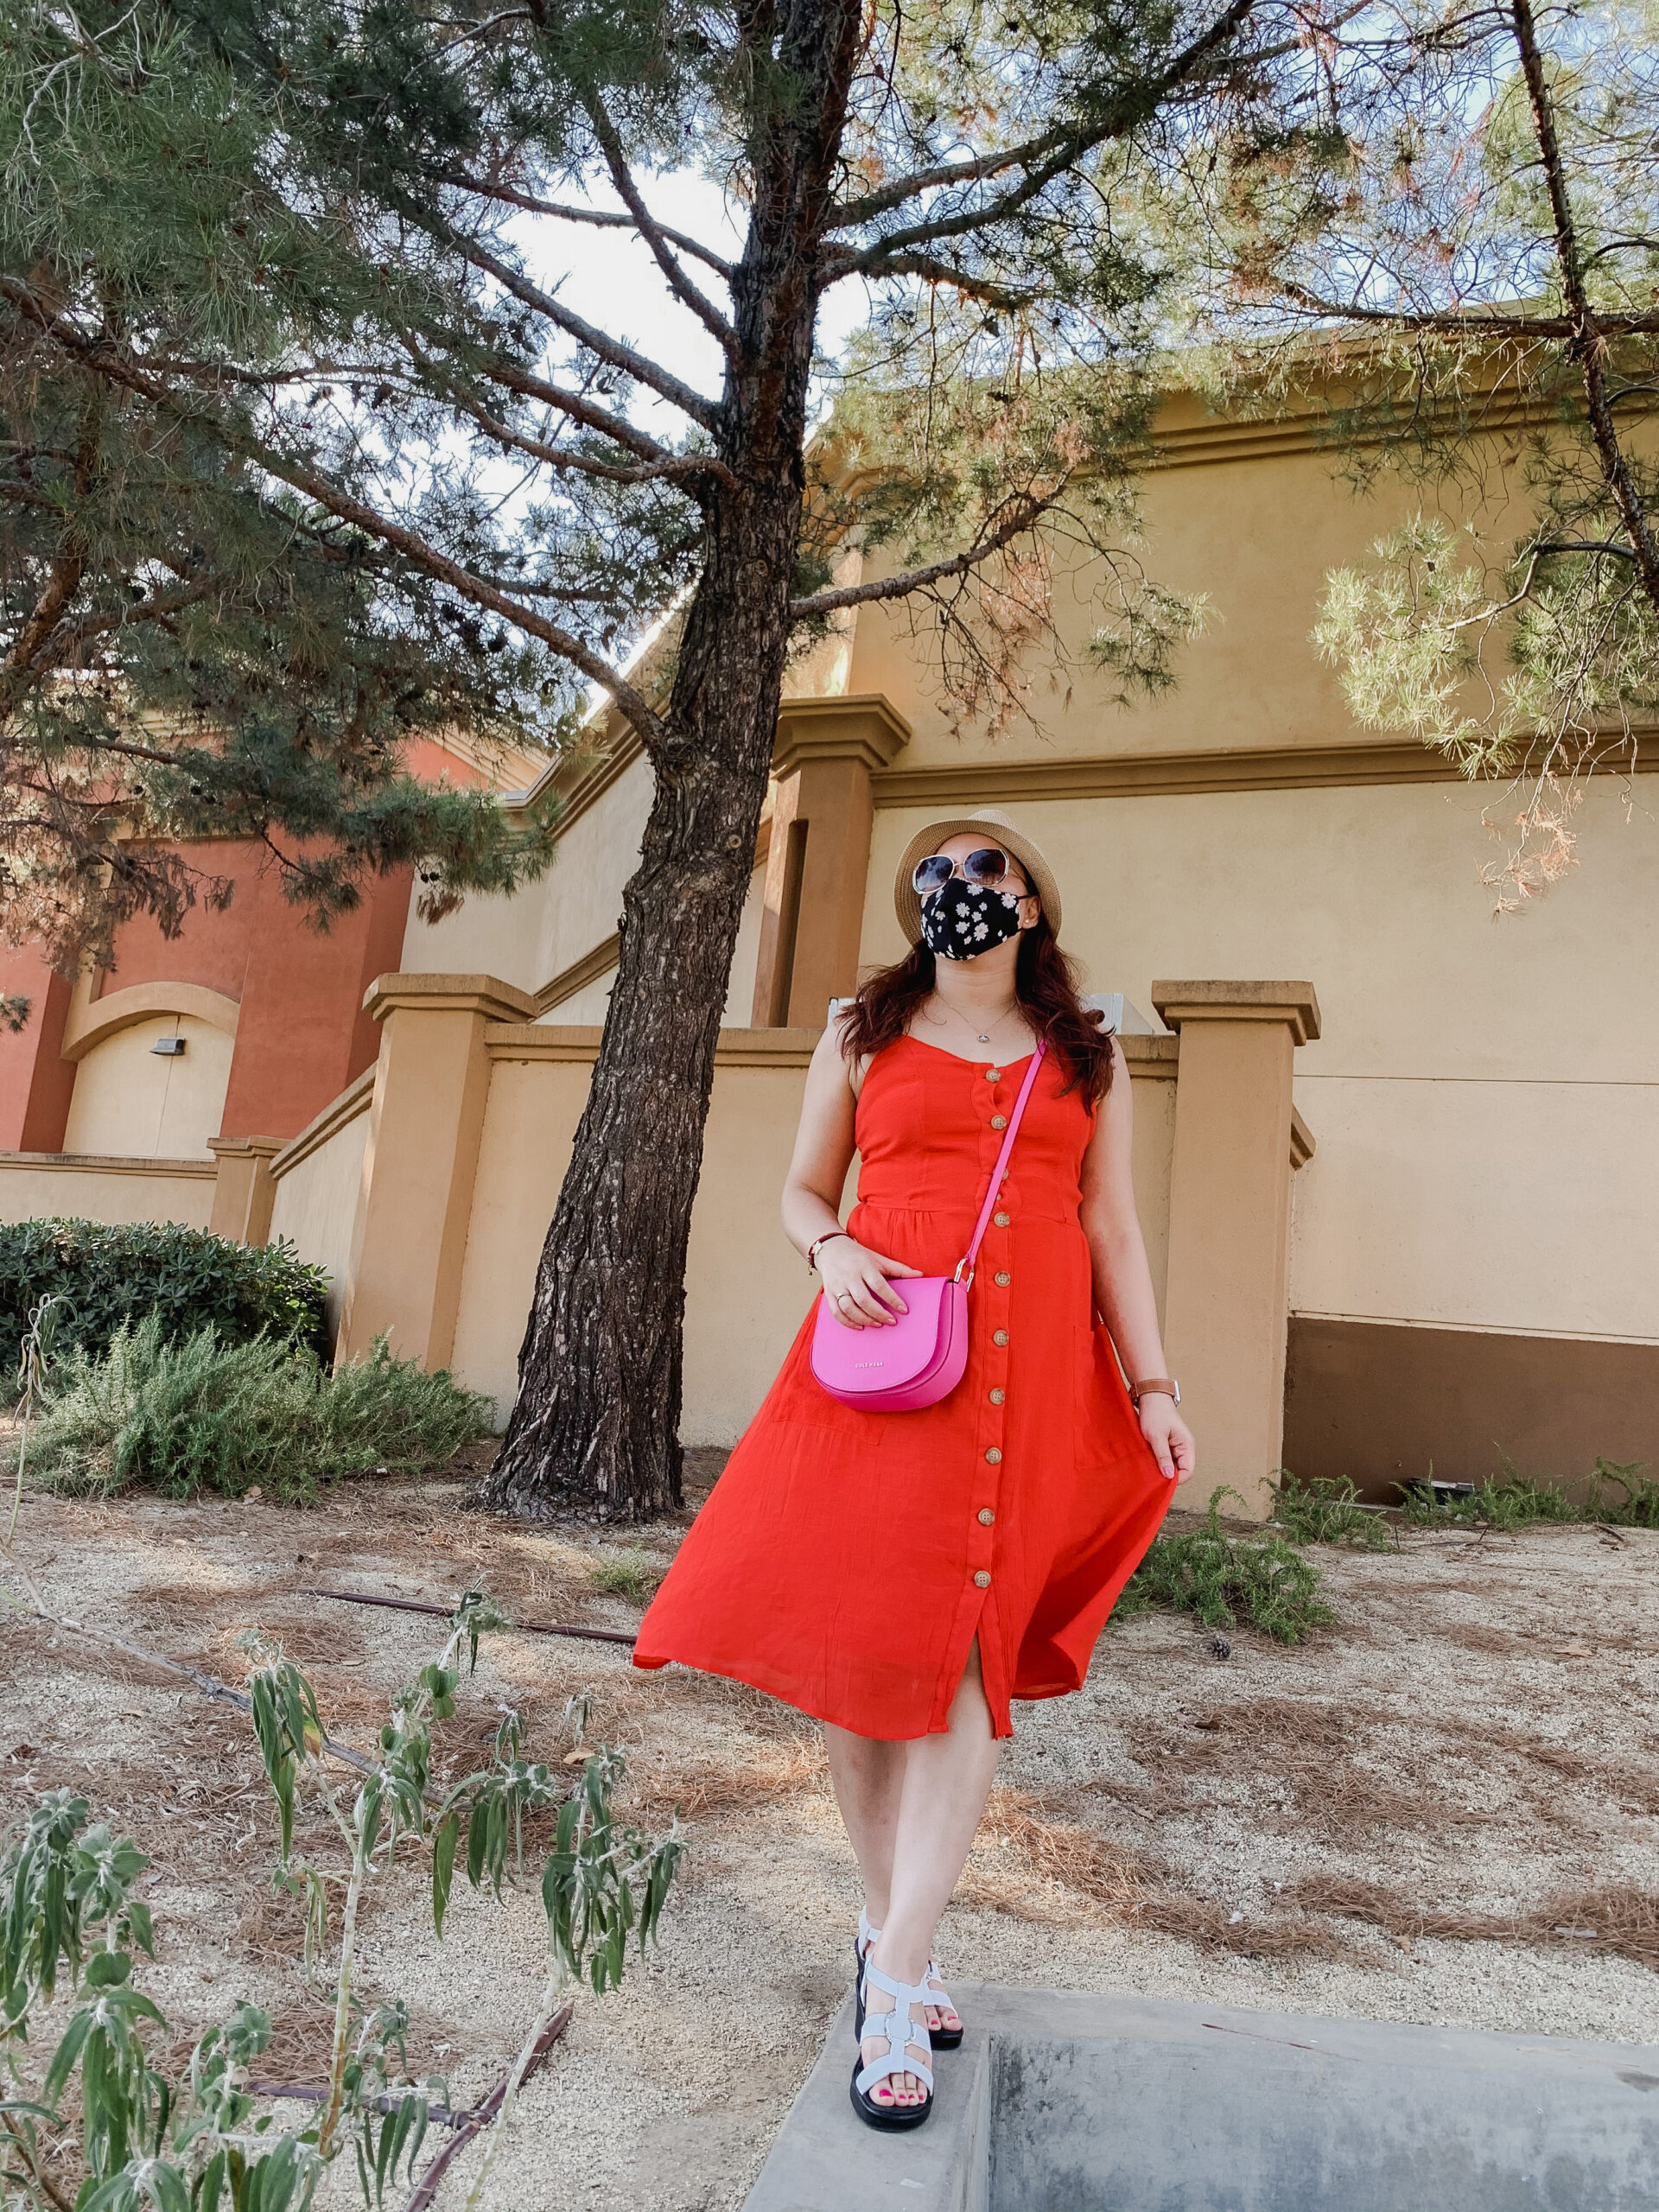 pslilyboutique-on-instagram-pinterest-amazon-red-dress-summer-2020-outfit-ideas-la-fashion-blogger-top-fashion-blog-IMG_2378